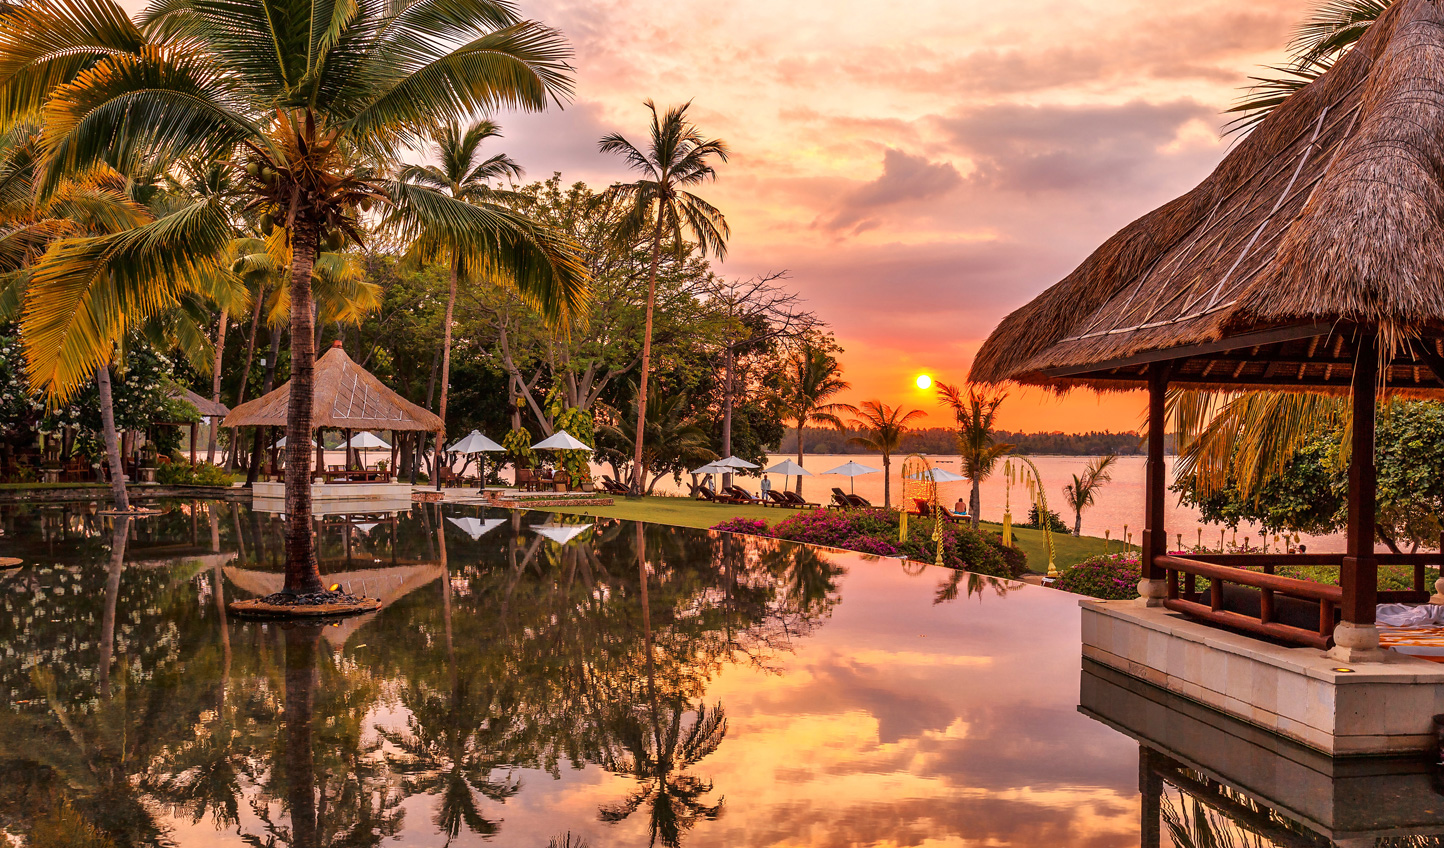 Watch the sun dip down over the infinity pool